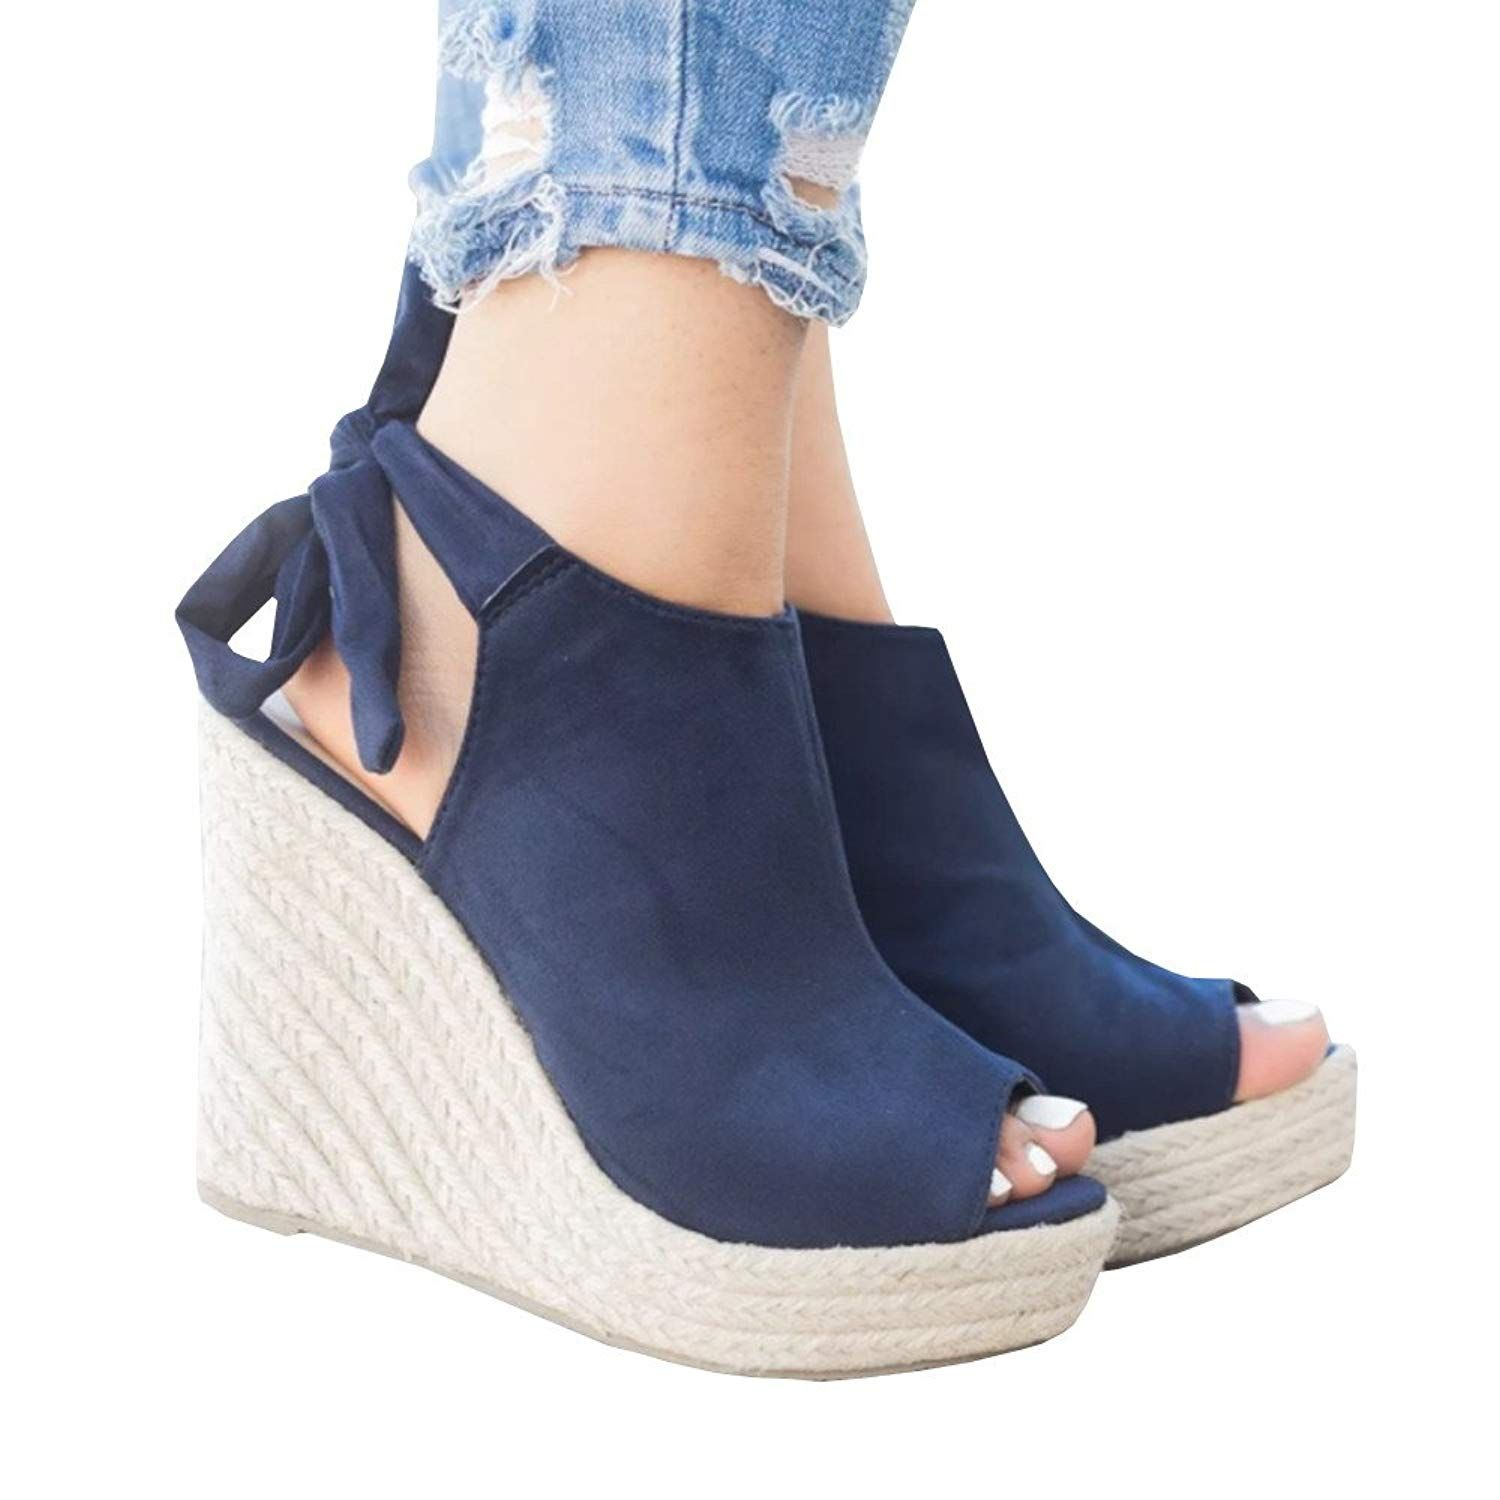 ef6d48efad7 SySea Womens Wedge Sandals Peep Toe Tie Up Ankle Strap Espadrille ...